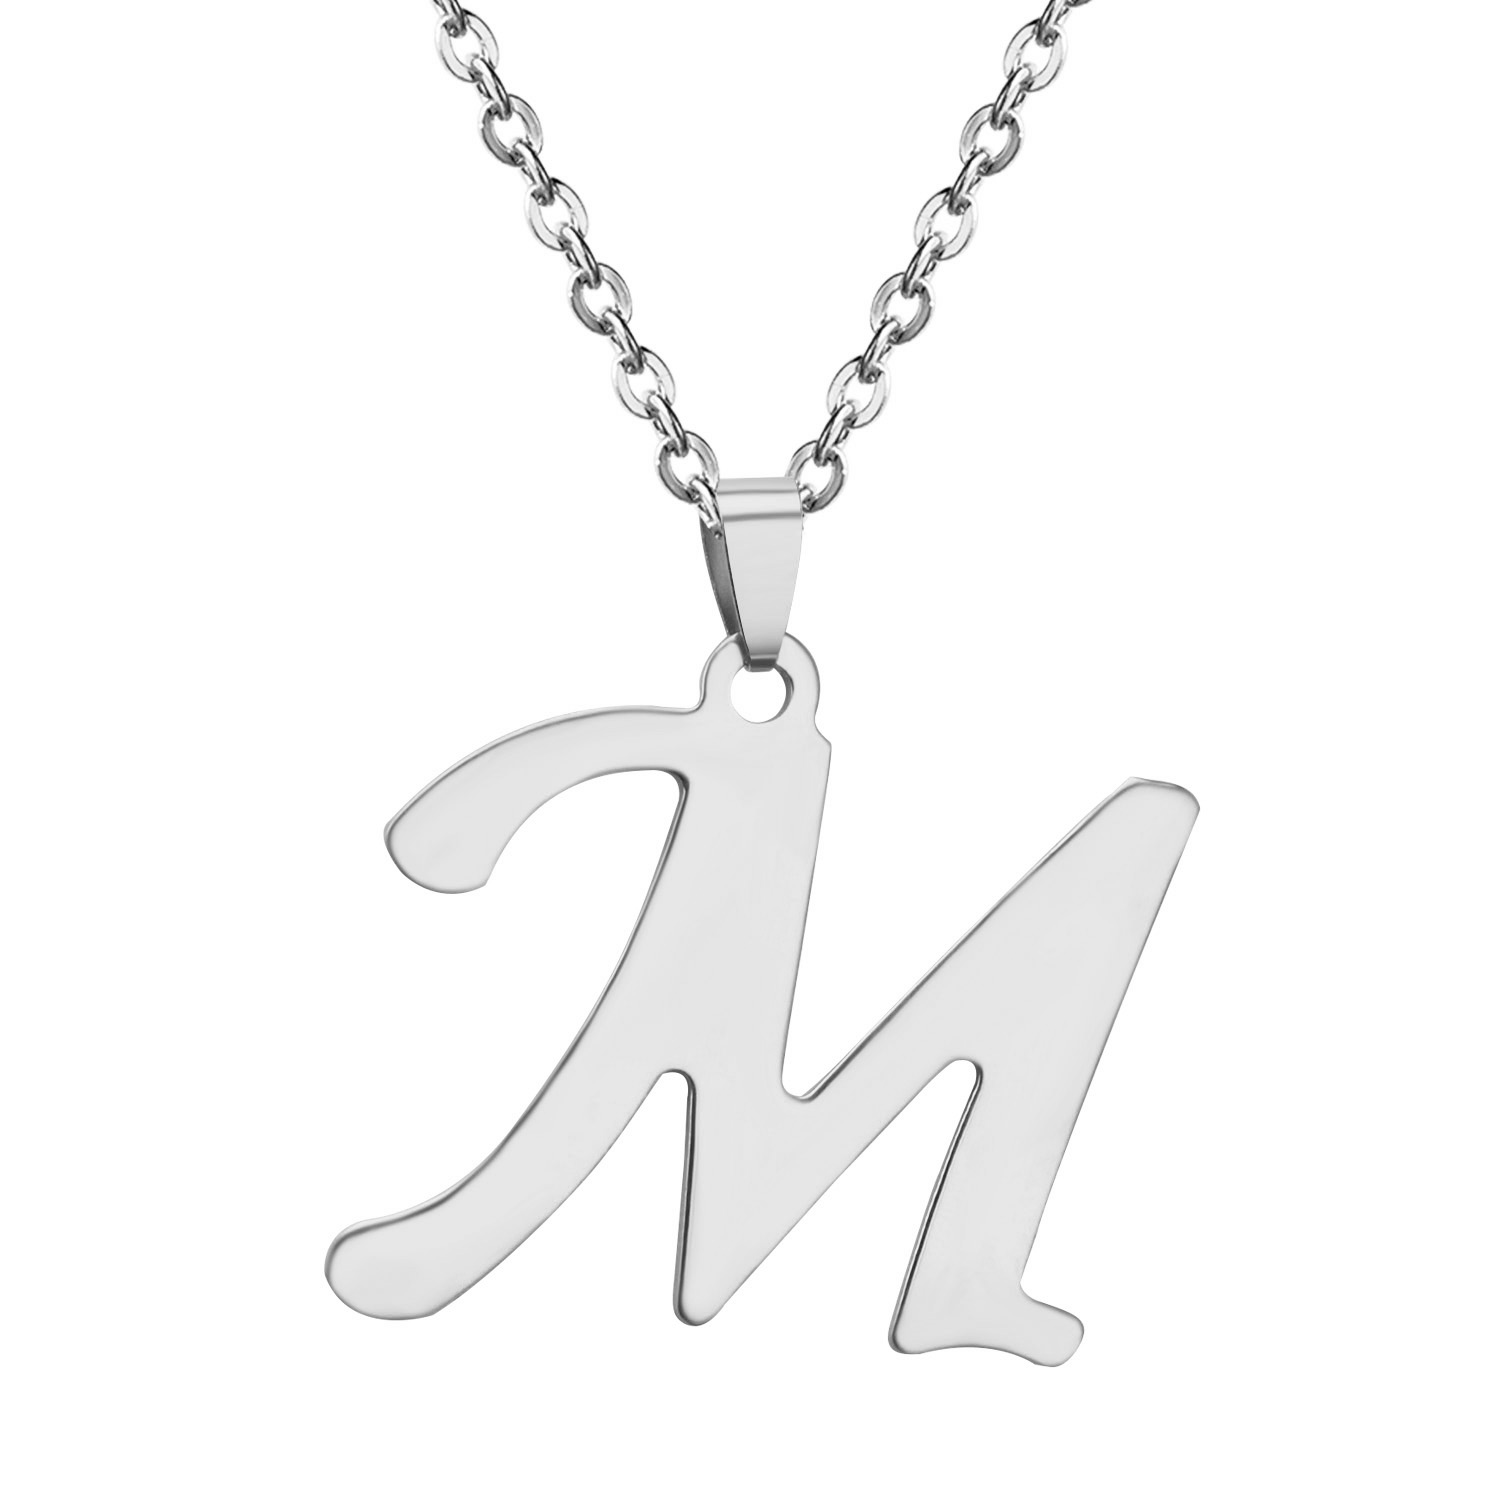 billy heart productdetail silver products initial letter silvertag necklace with tag personalized custom pendant and